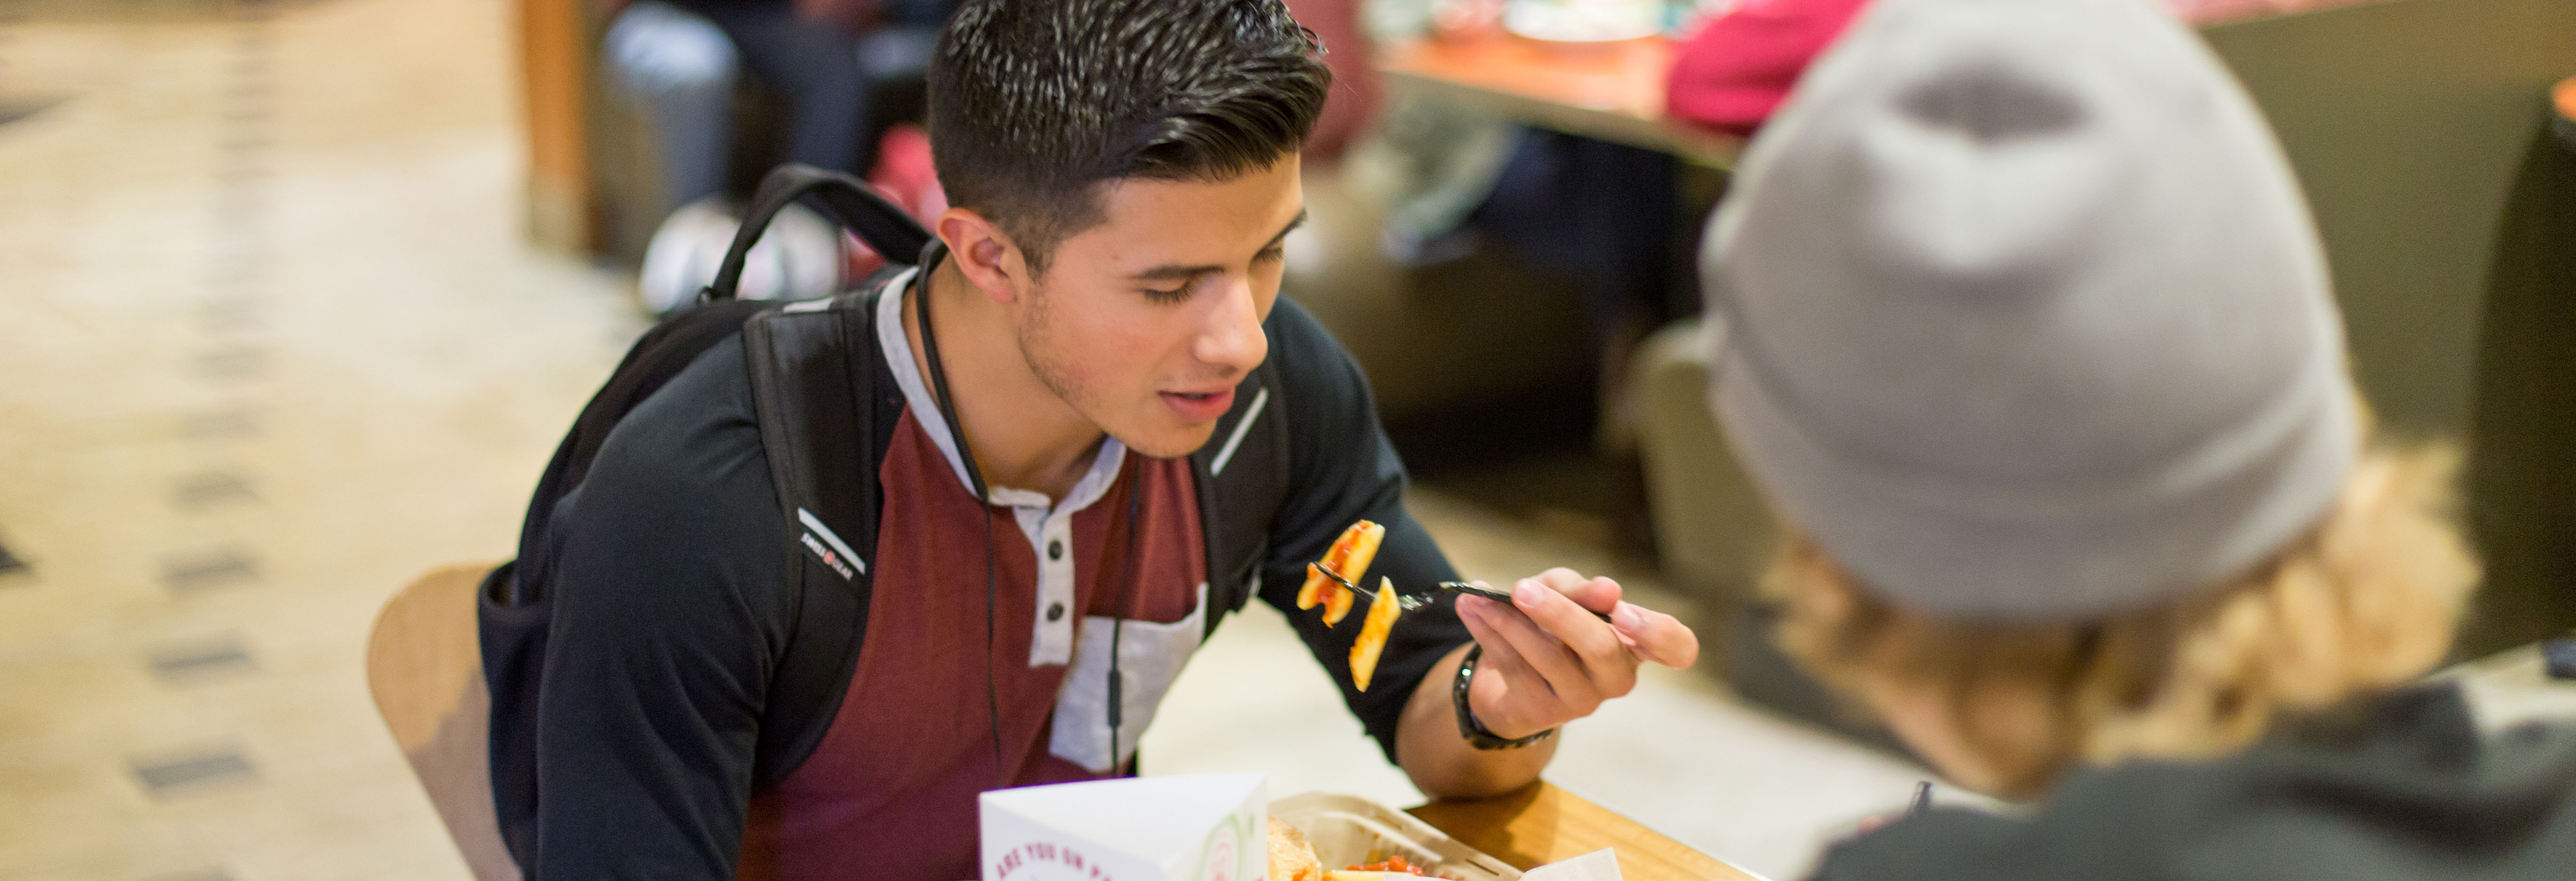 A student enjoys pasta at a dining center.